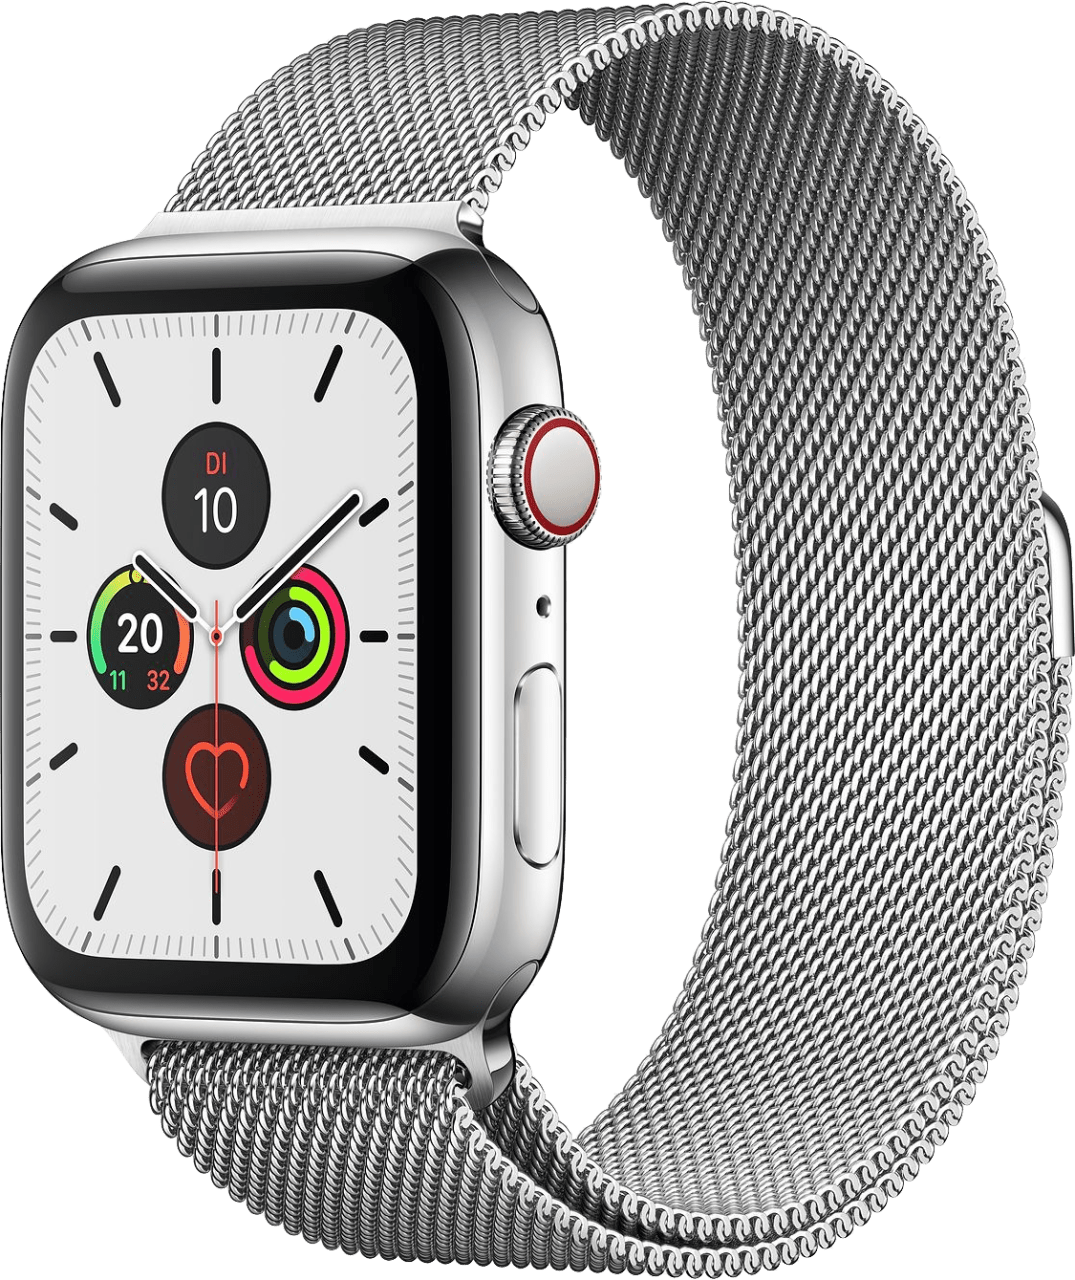 Silber Apple Watch Series 5 GPS + Cellular, 40mm.2